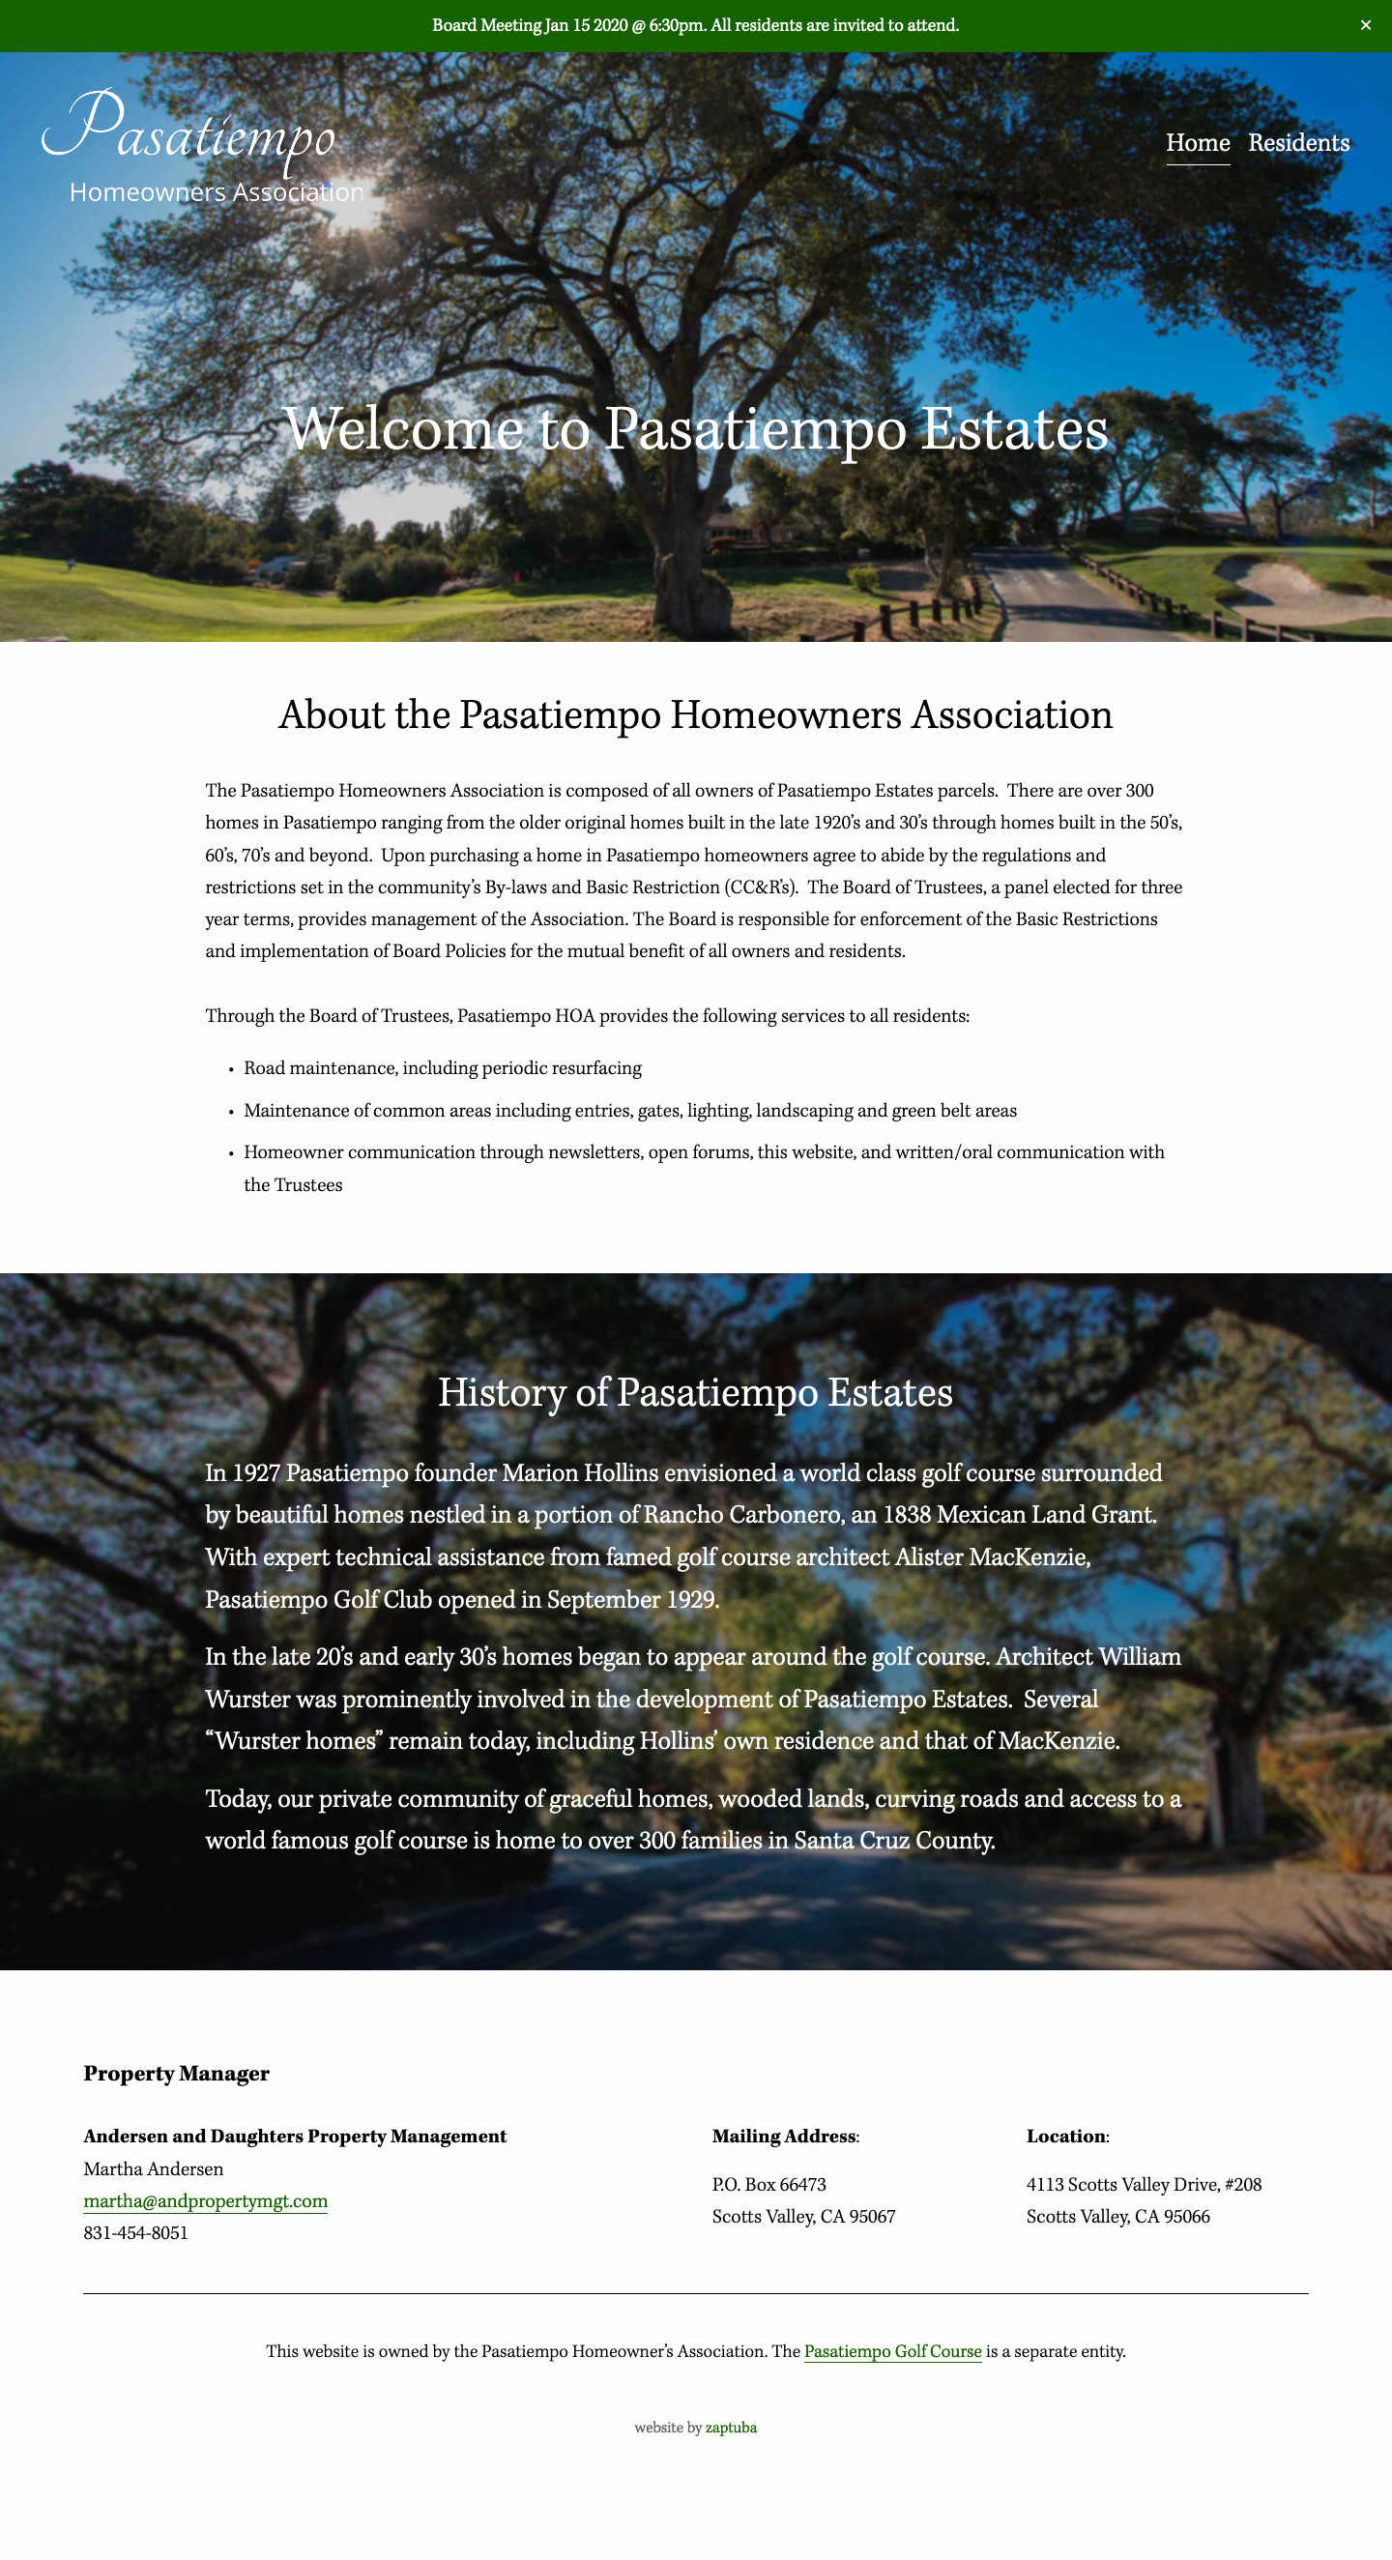 Pasatiempo Homeowner Association - Home Page